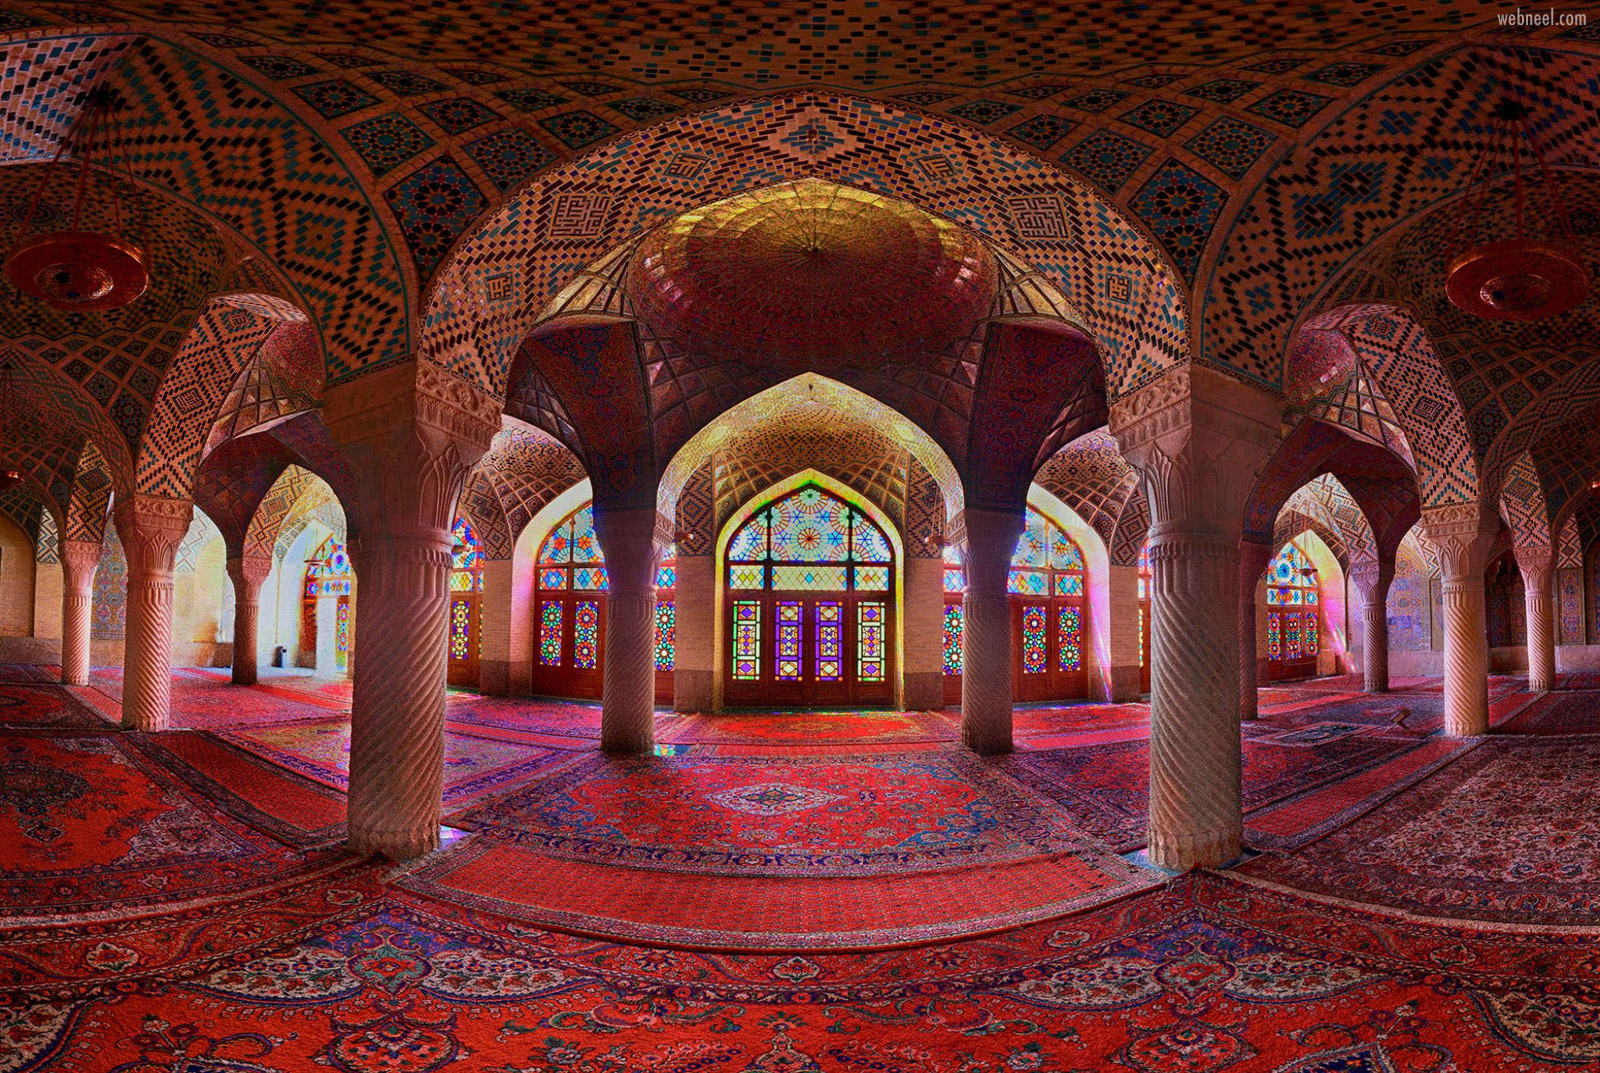 abstract photography building architechture colorful arab muslim